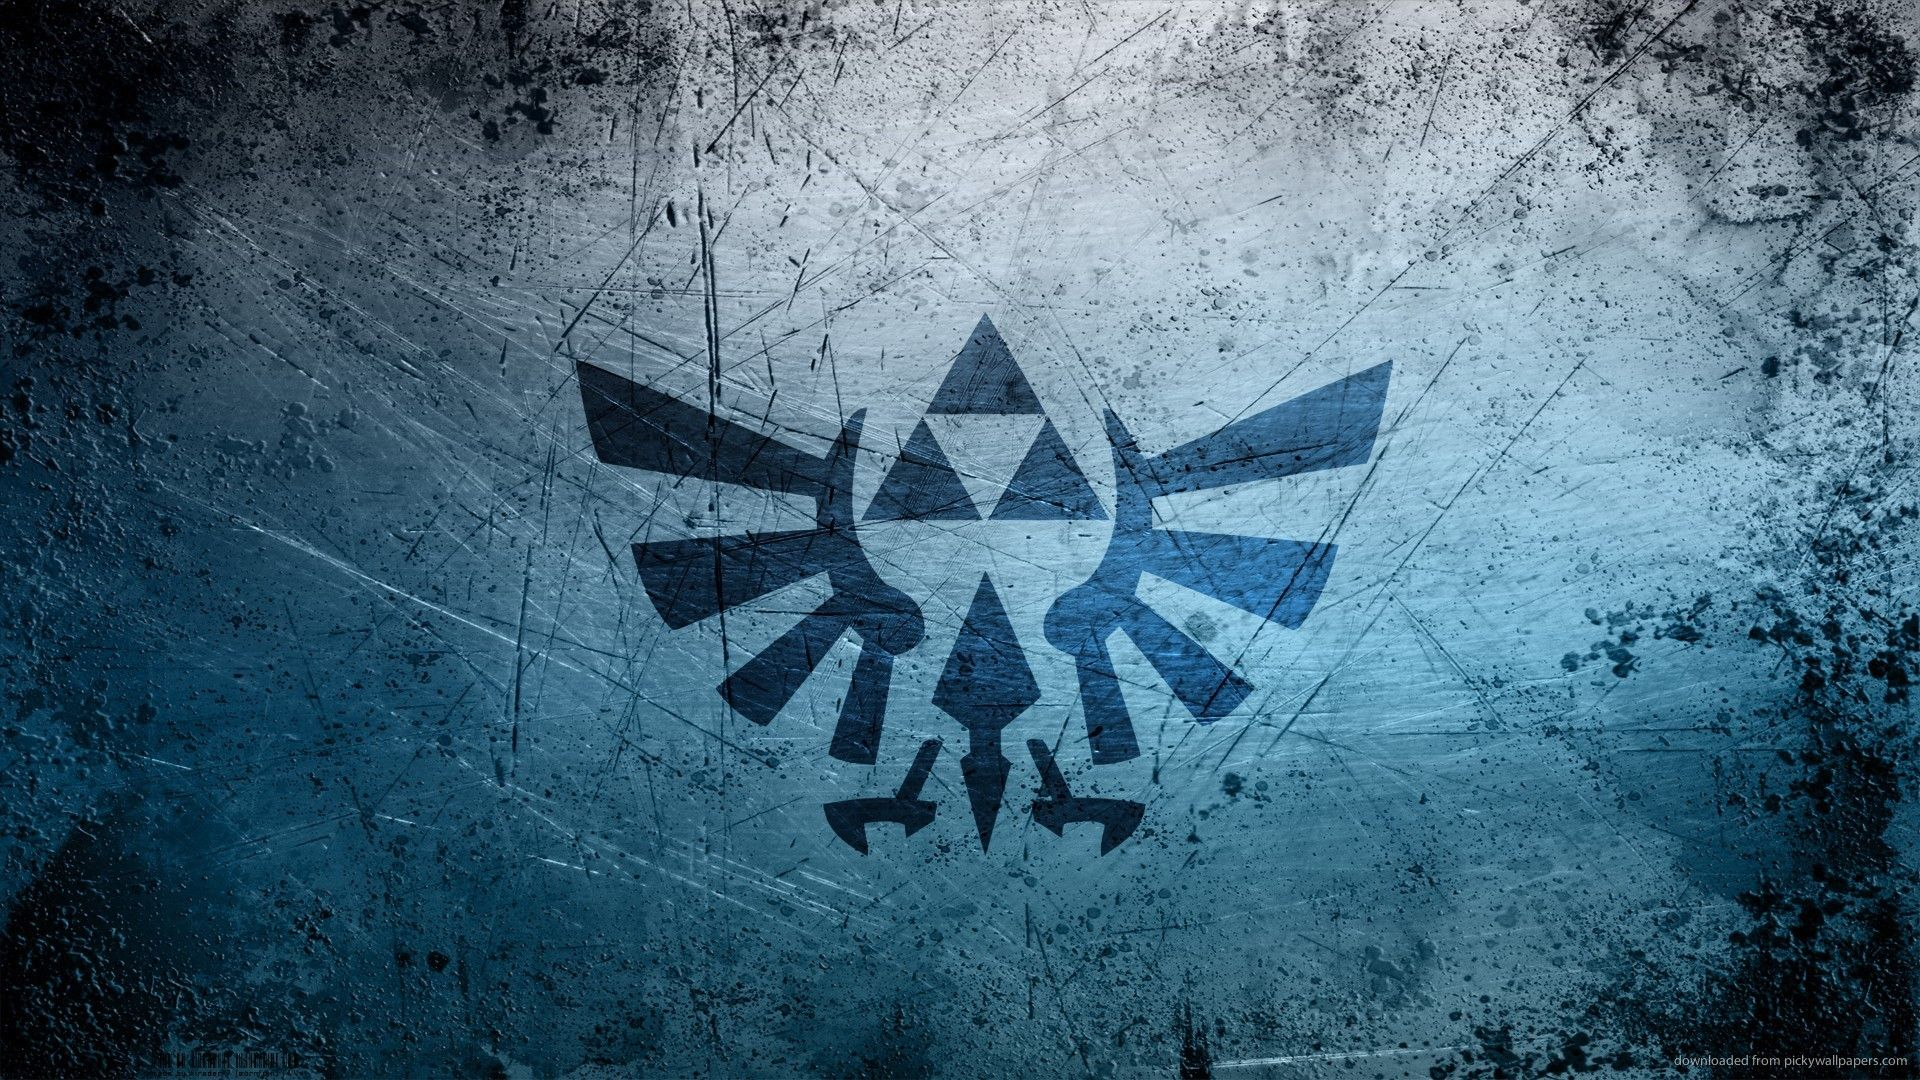 legend of zelda wallpaper p | hd wallpapers | pinterest | wallpaper